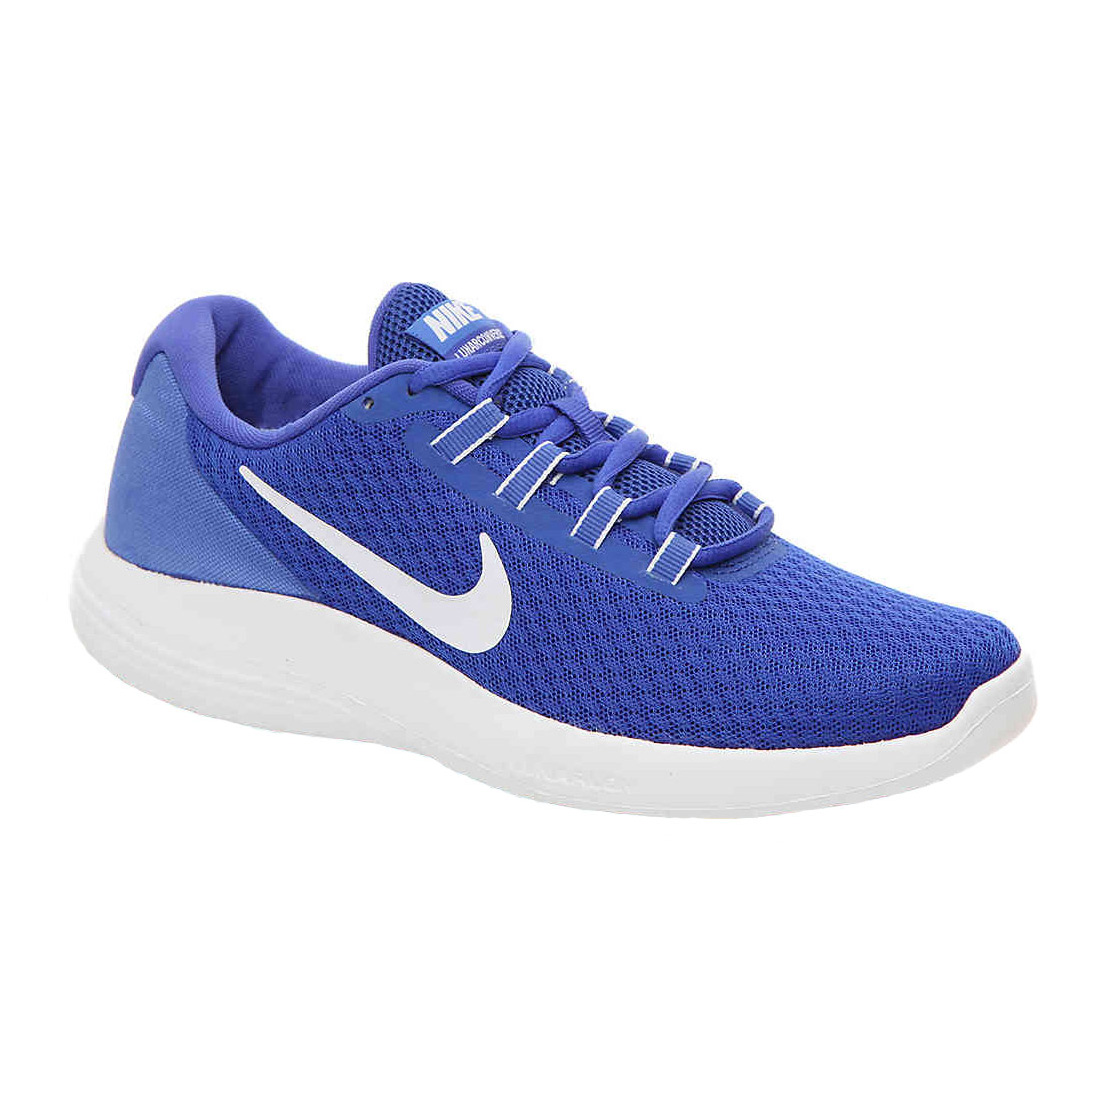 Nike Lunarswift Running Shoes